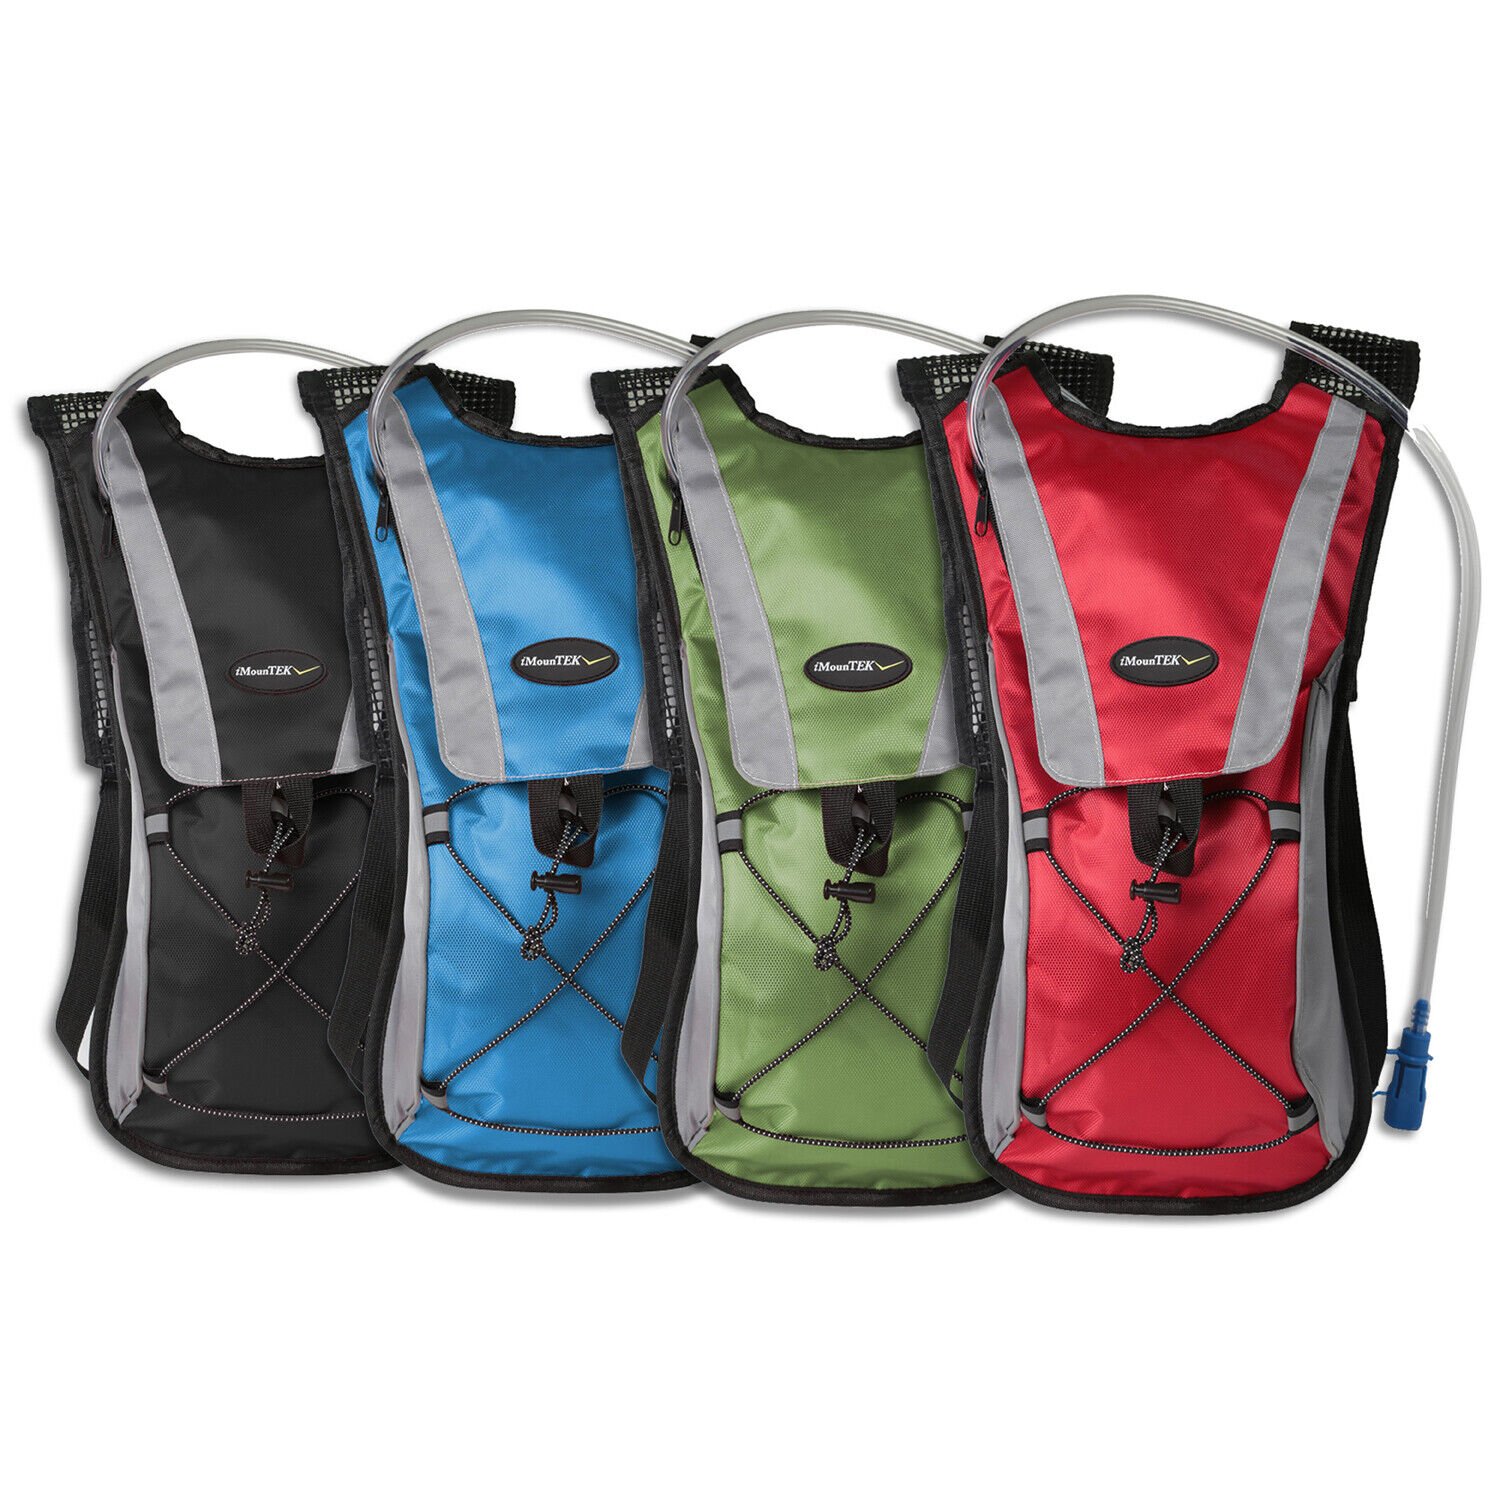 us-hydration-pack-2l-water-bladder-bag-outdoor-sport-backpack-hiking-camping